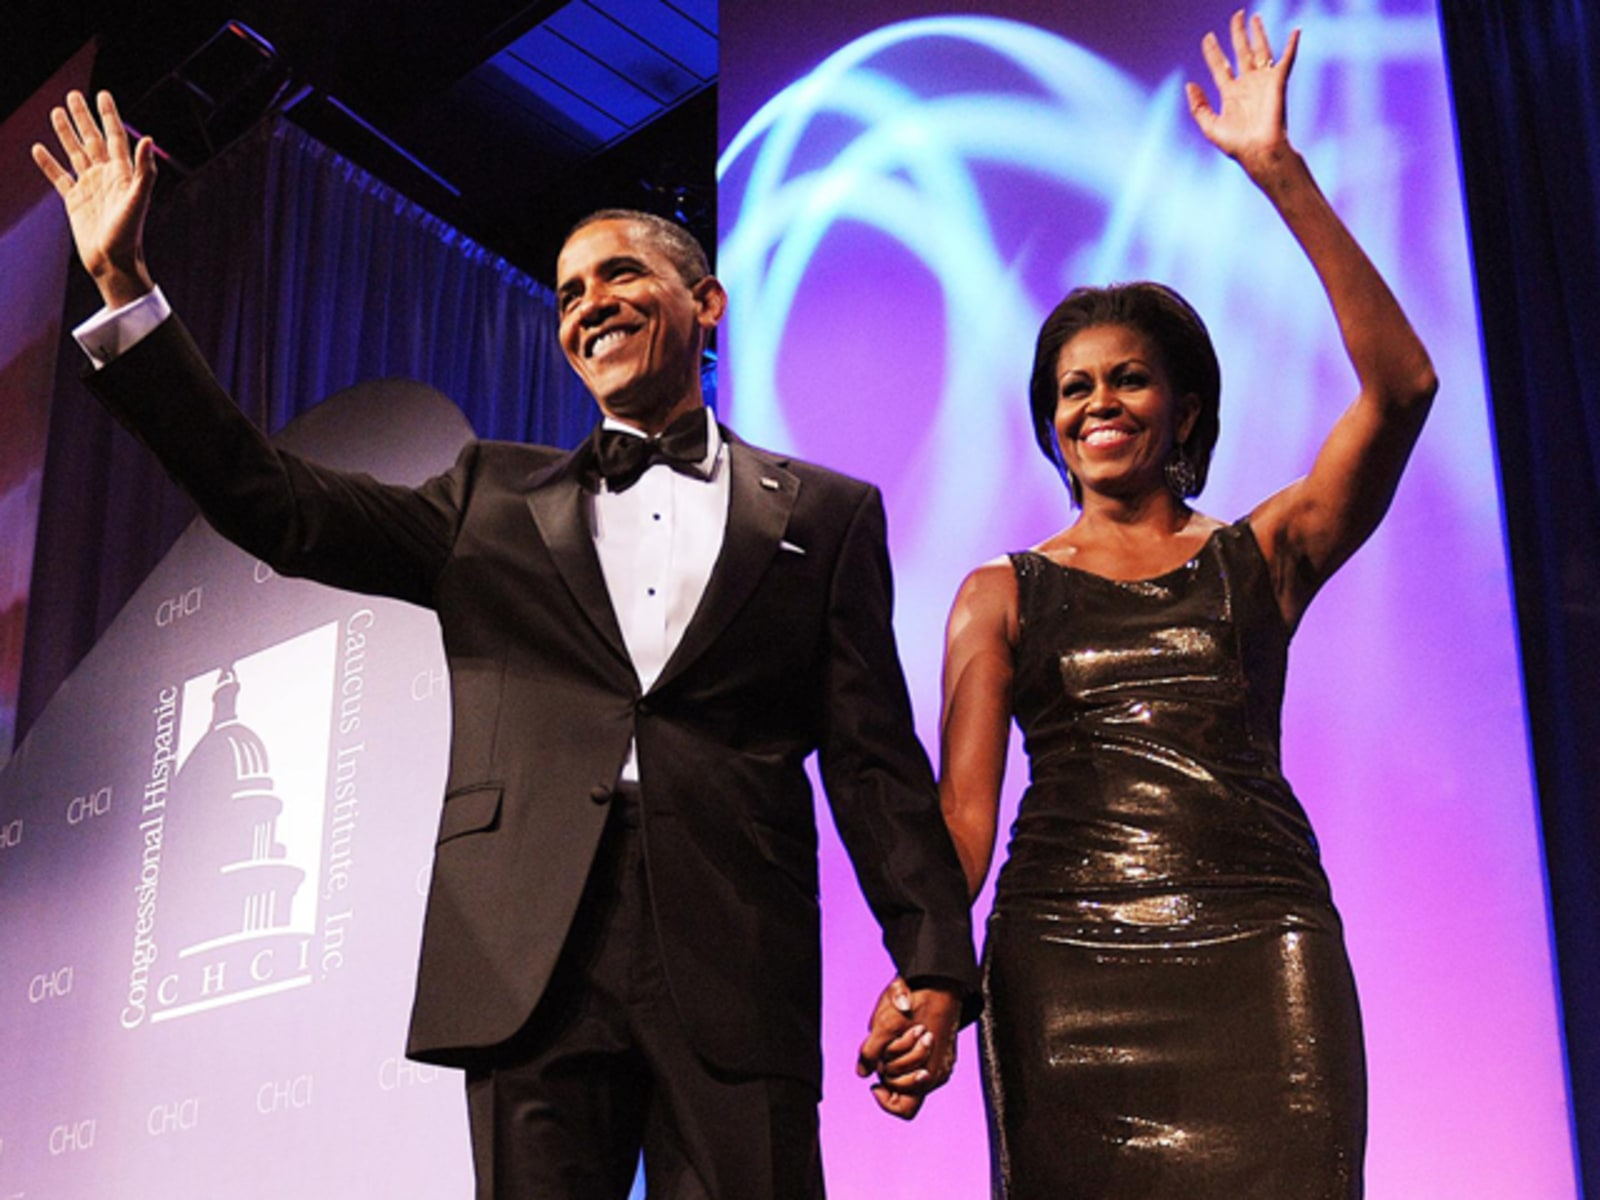 Image: President and First Lady Obama Attend Congressional Hispanic Caucus Institute Gala - Washington